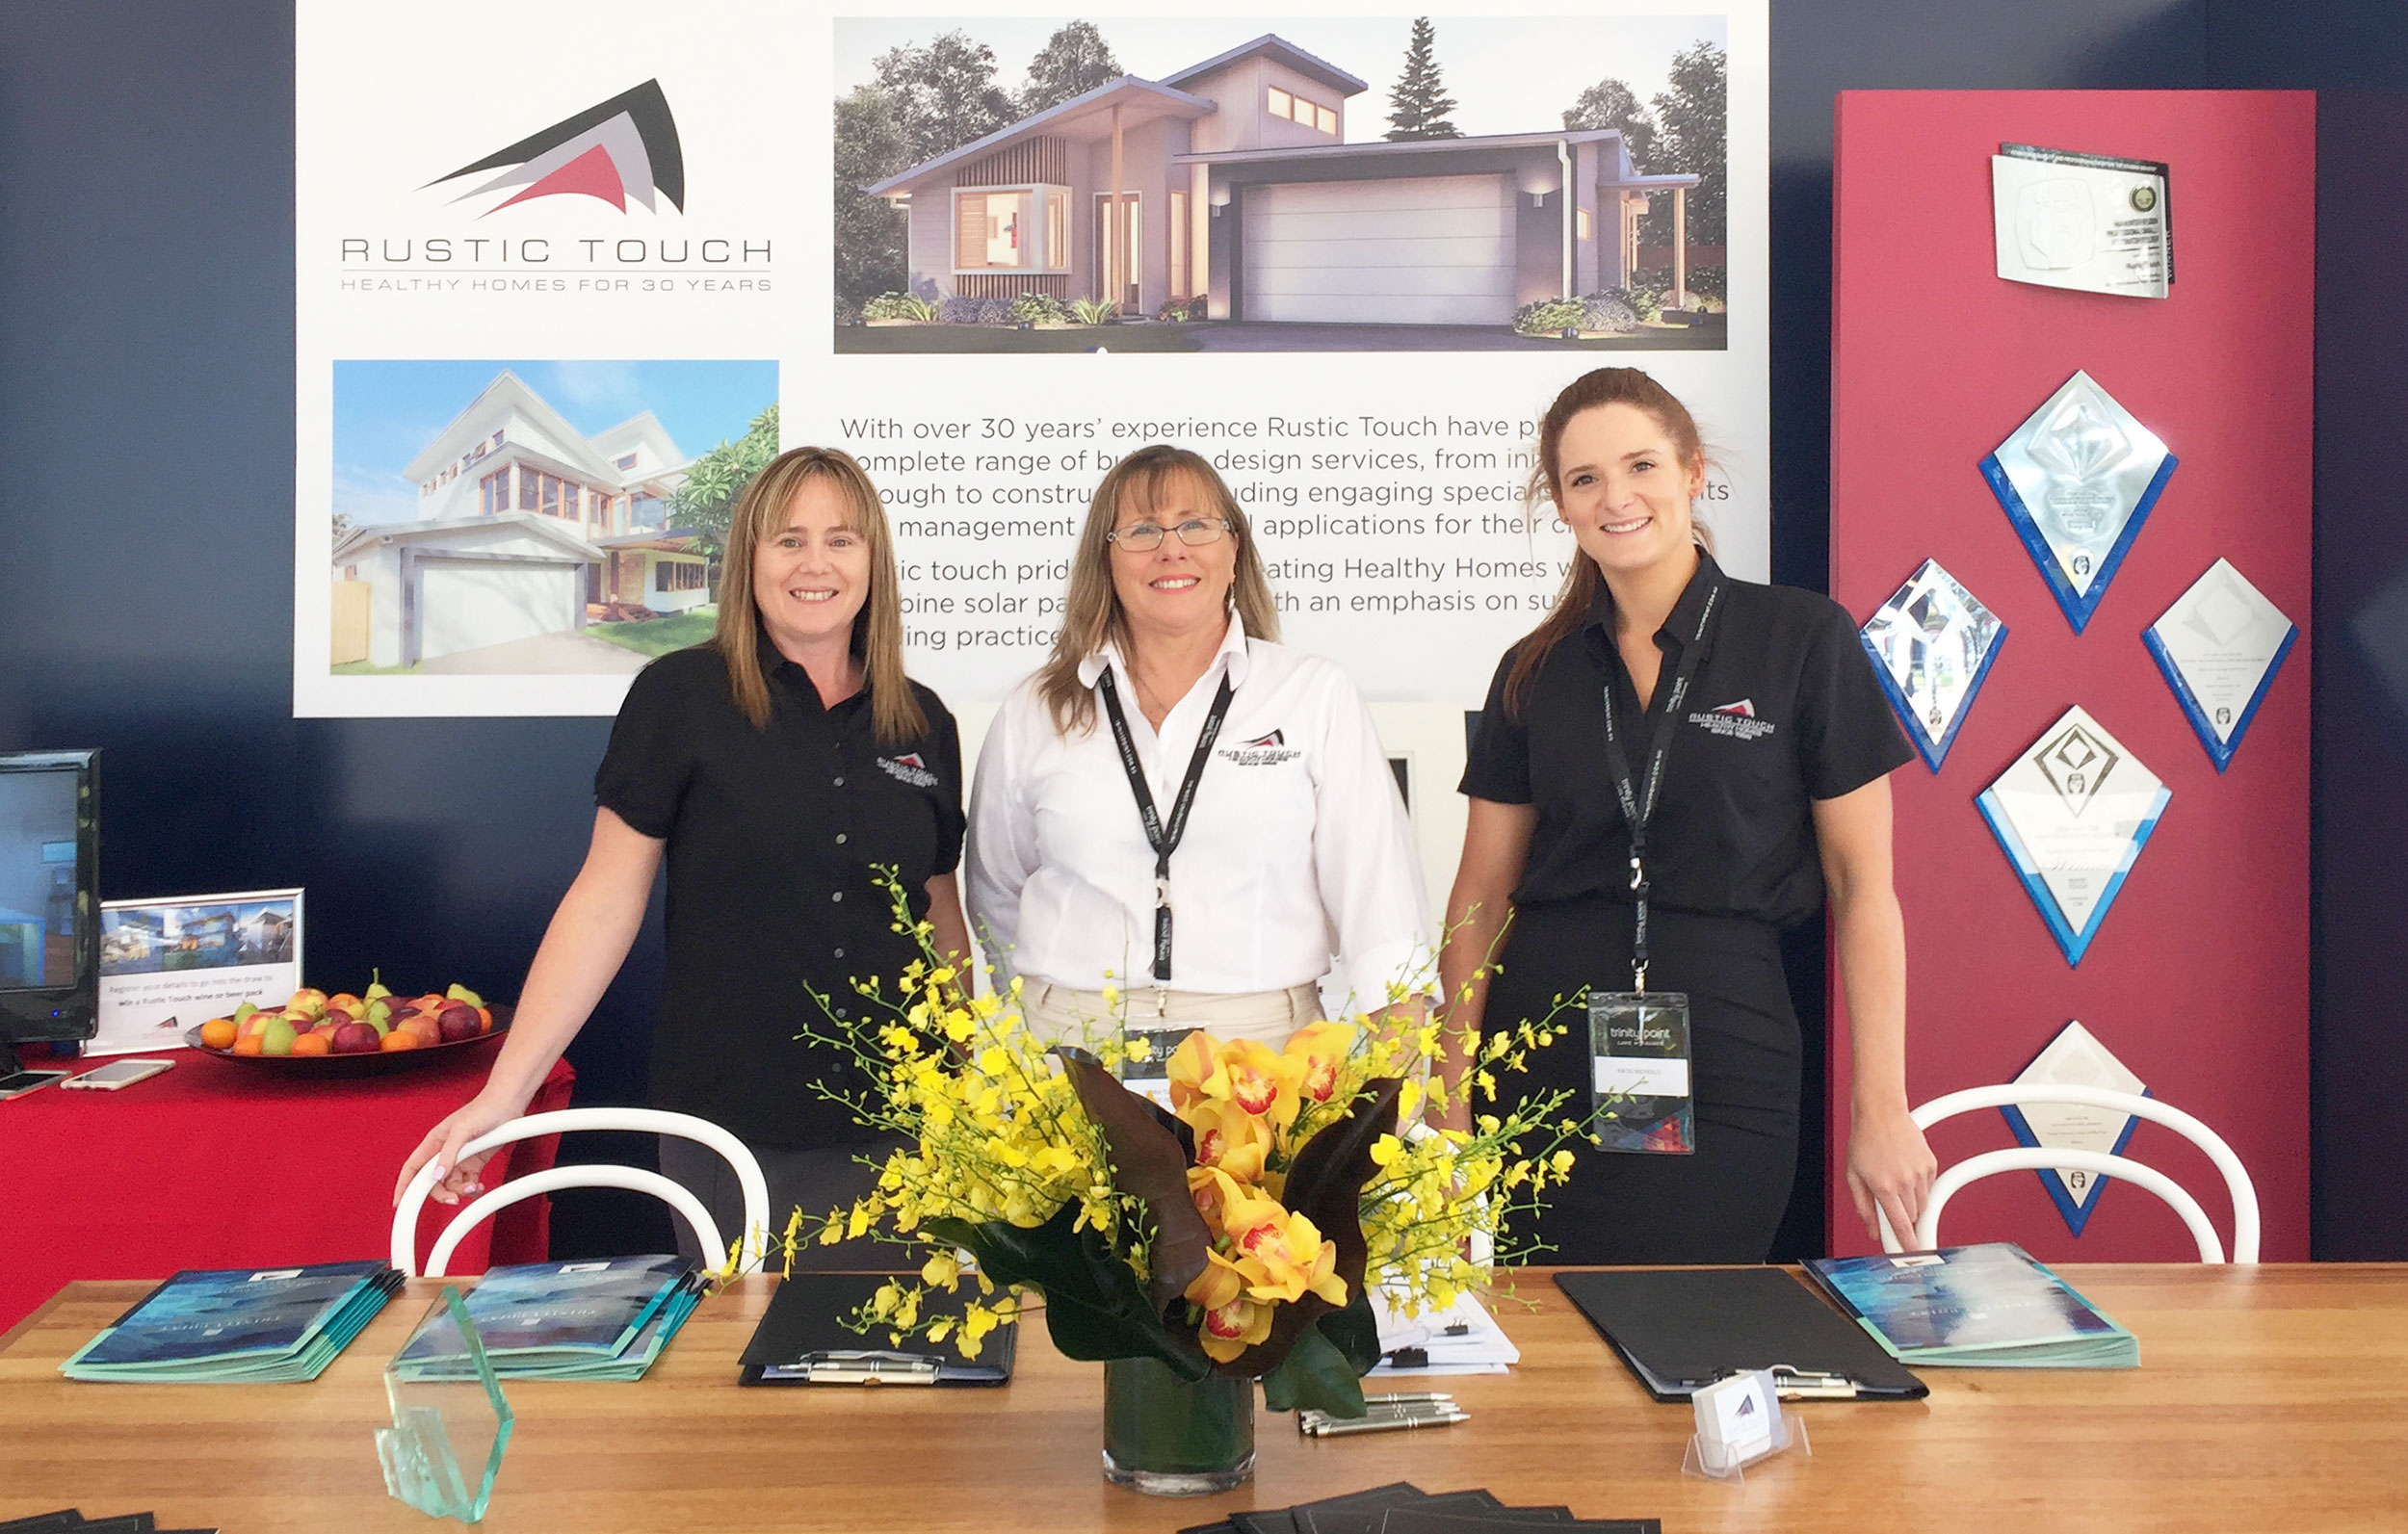 The opening of Trinity Point with Rustic Touch